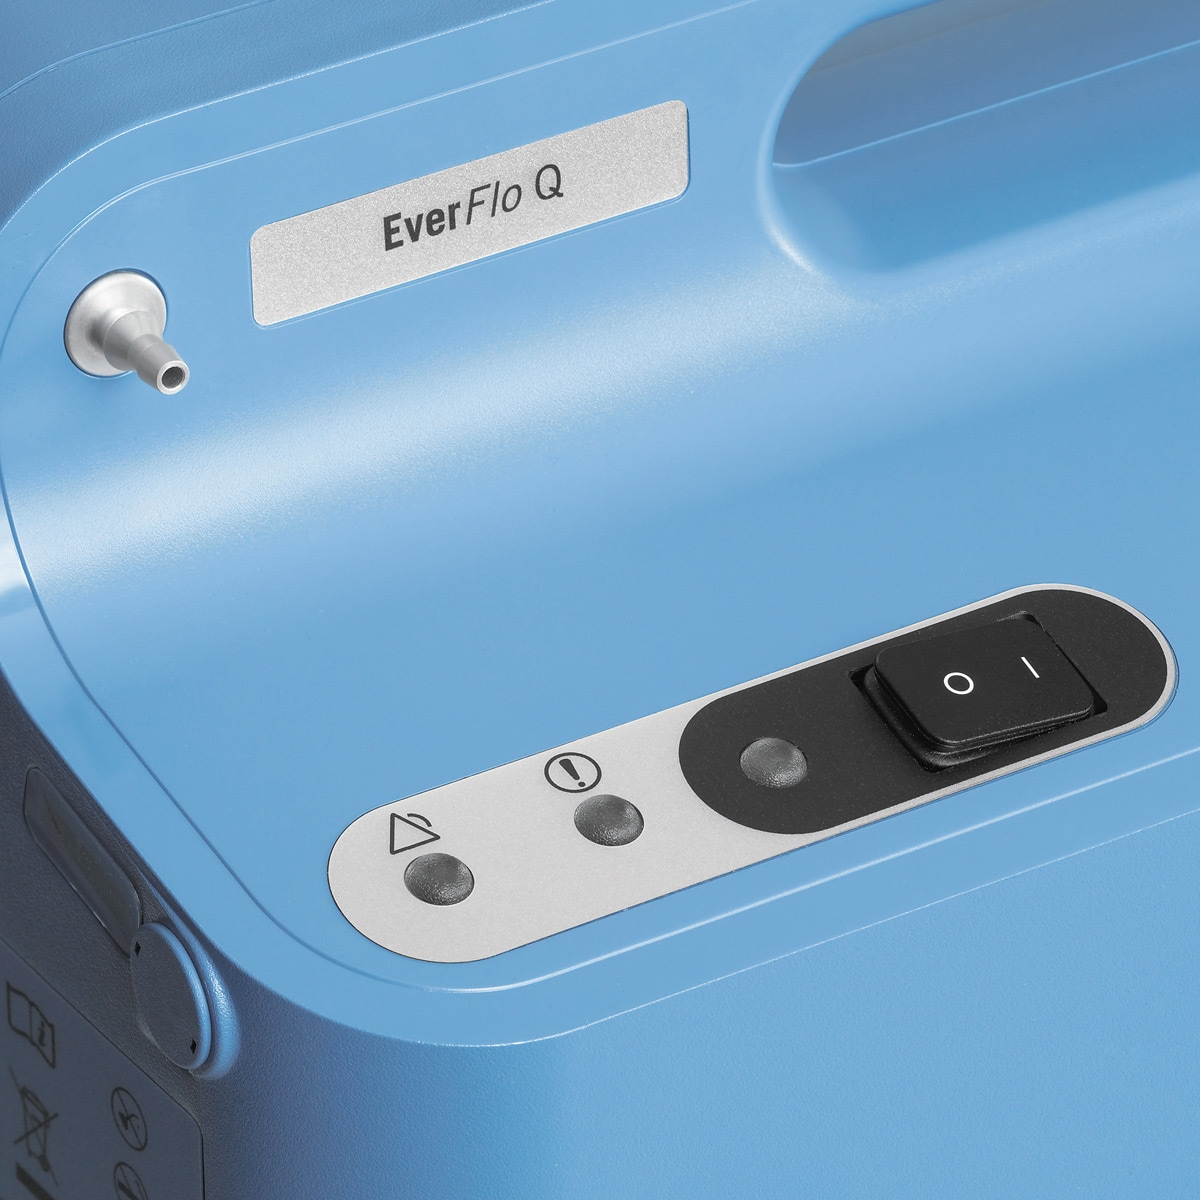 EverFlo Q Home Oxygen Concentrator Package (5 LPM)